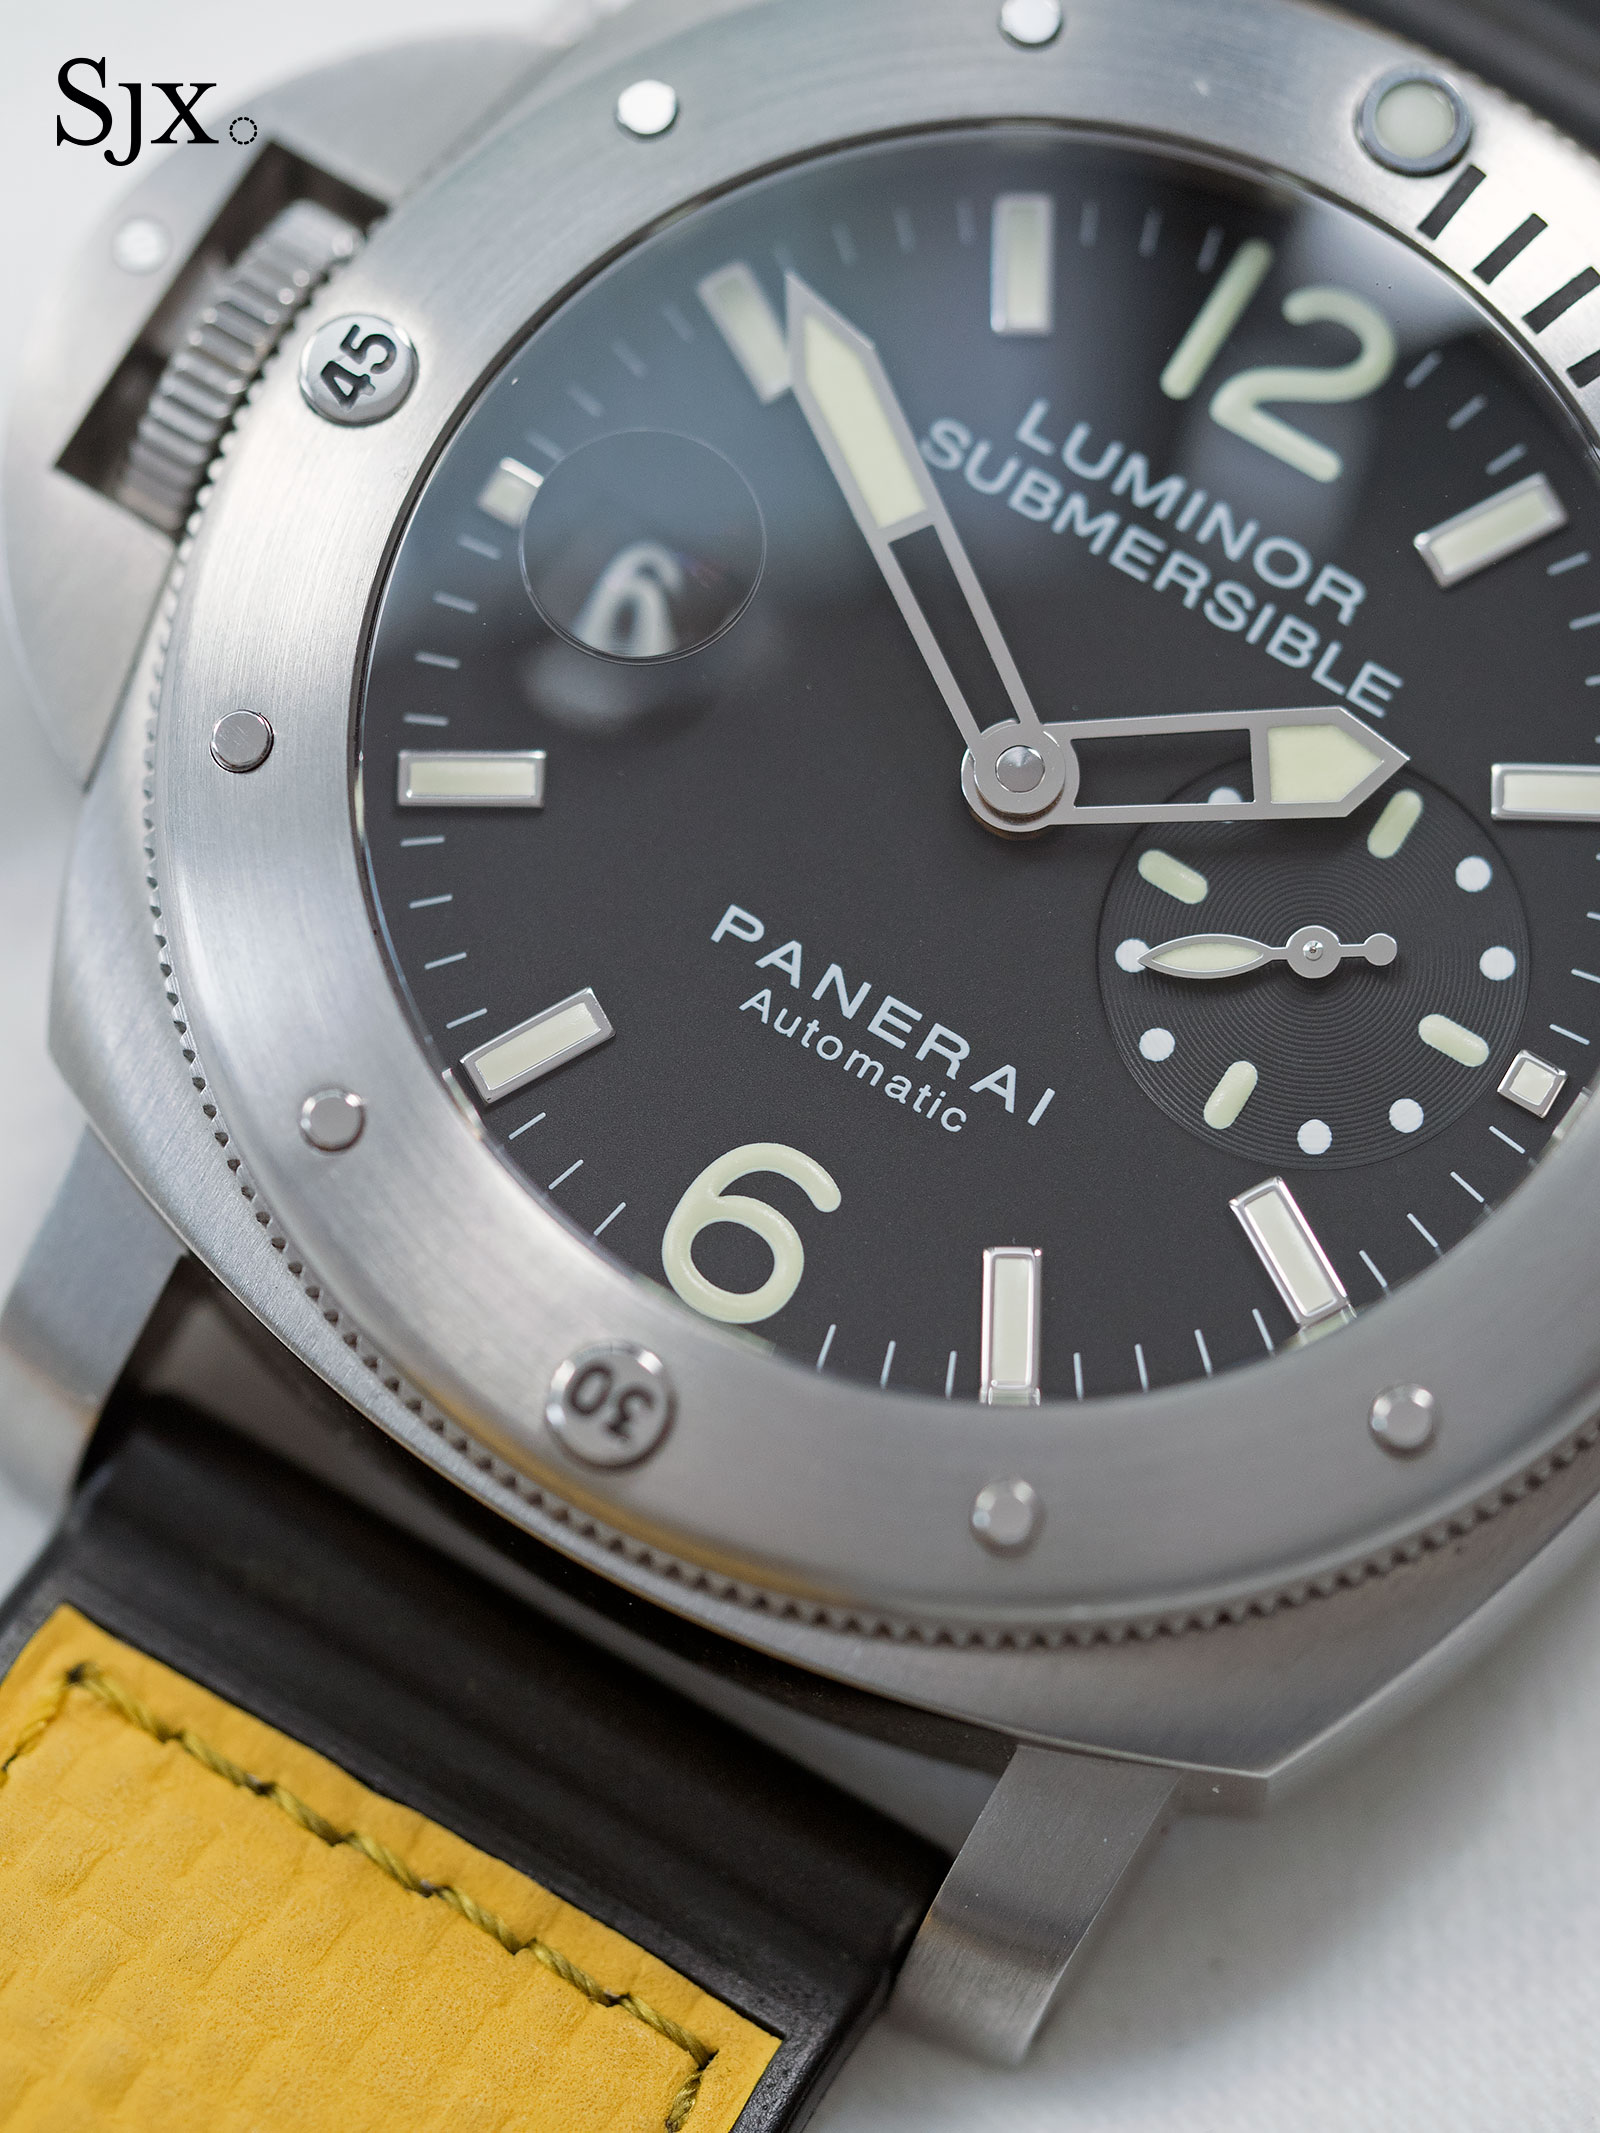 Panerai Submersible Destro Chronopassion PAM239-2